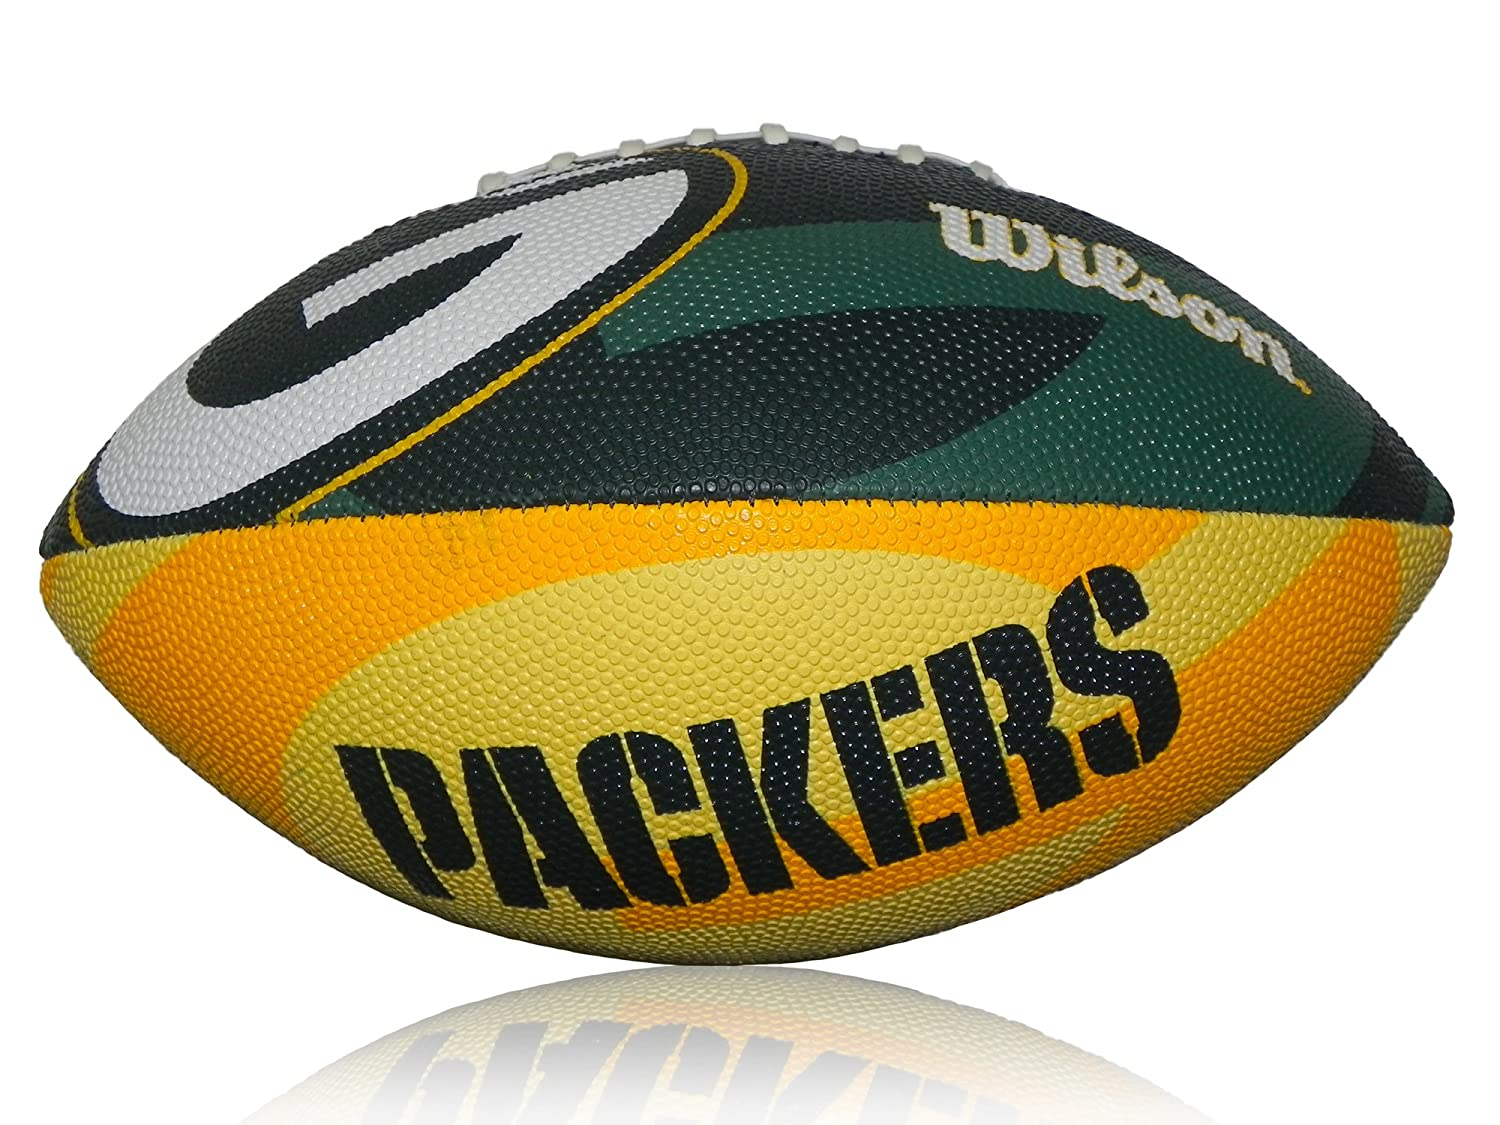 Wilson Football NFL Junior Greenbay Logo Junior - Balón de fútbol americano (infantil, caucho), color verde/amarillo, talla Junior WL0206173640